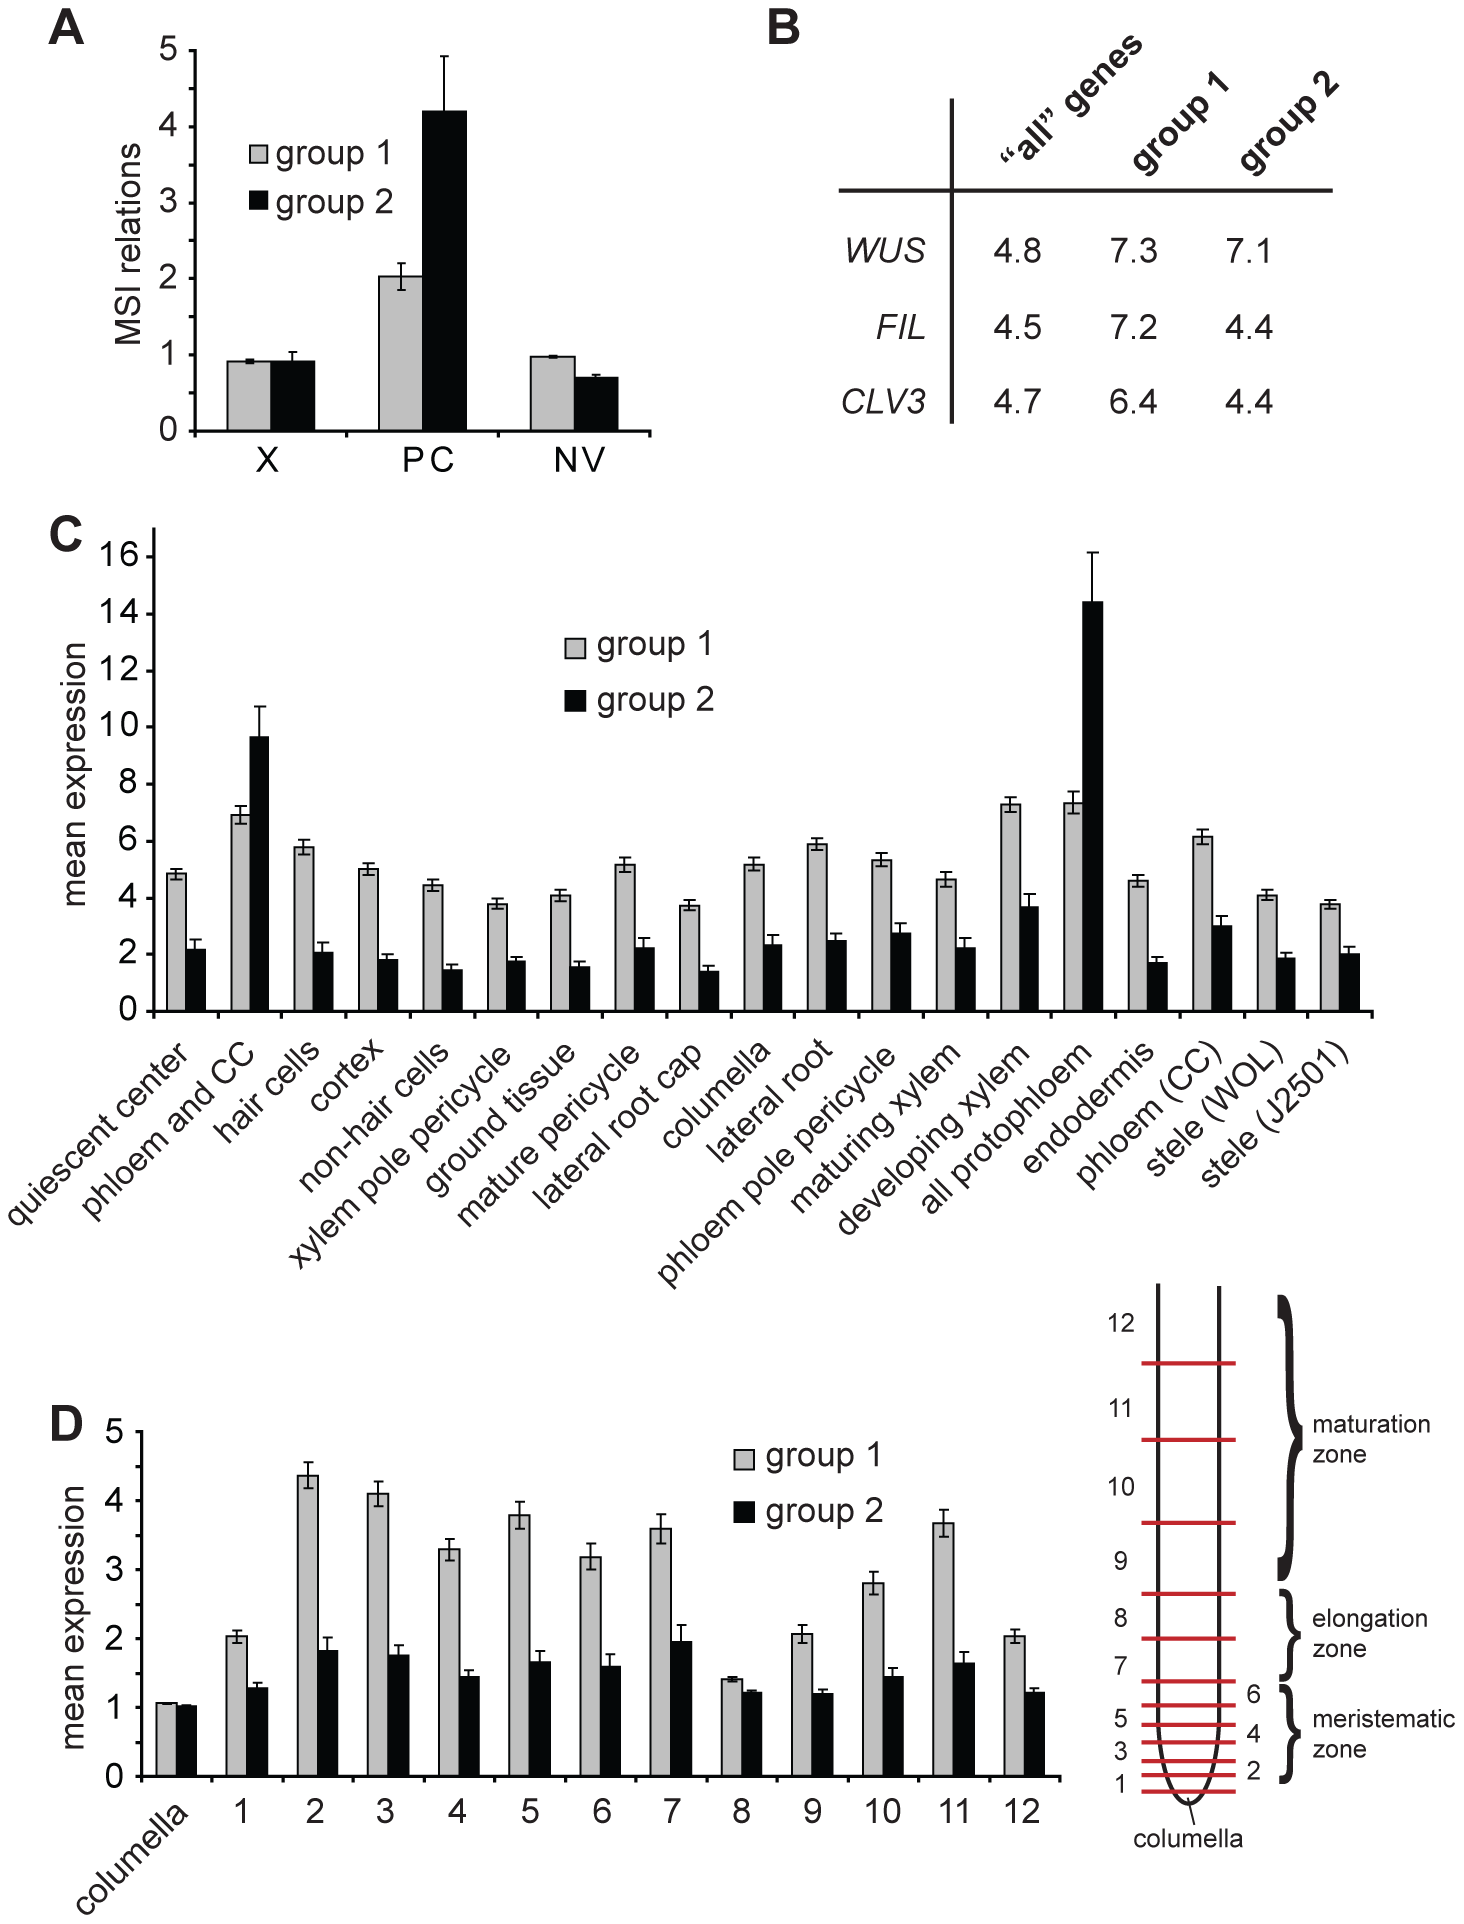 Expression of identified genes in various tissues.